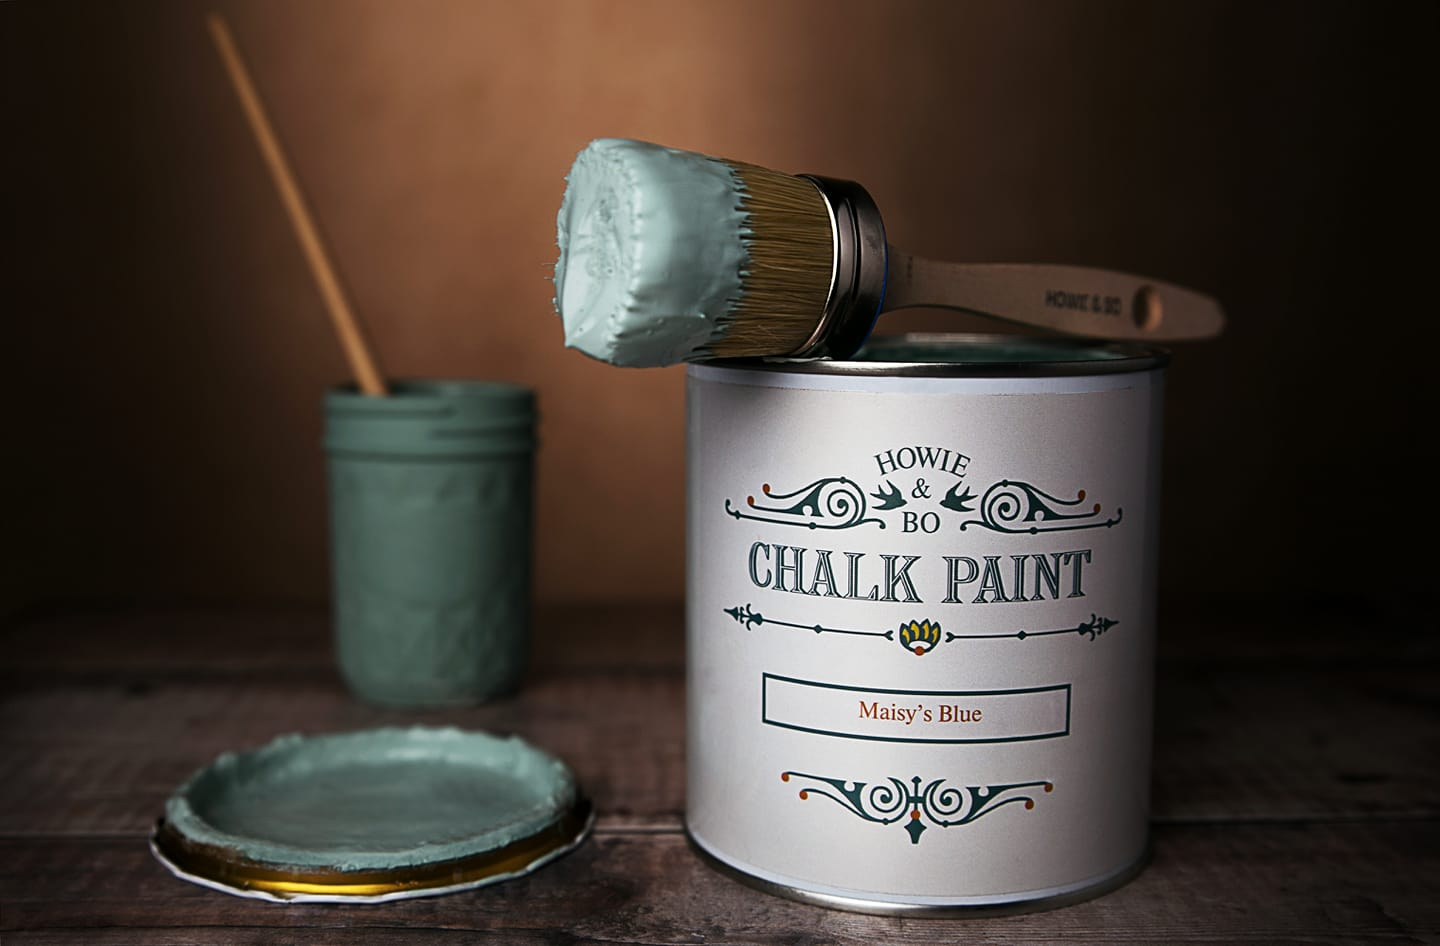 Howie & Bo Chalk Paint in Maisy Blue